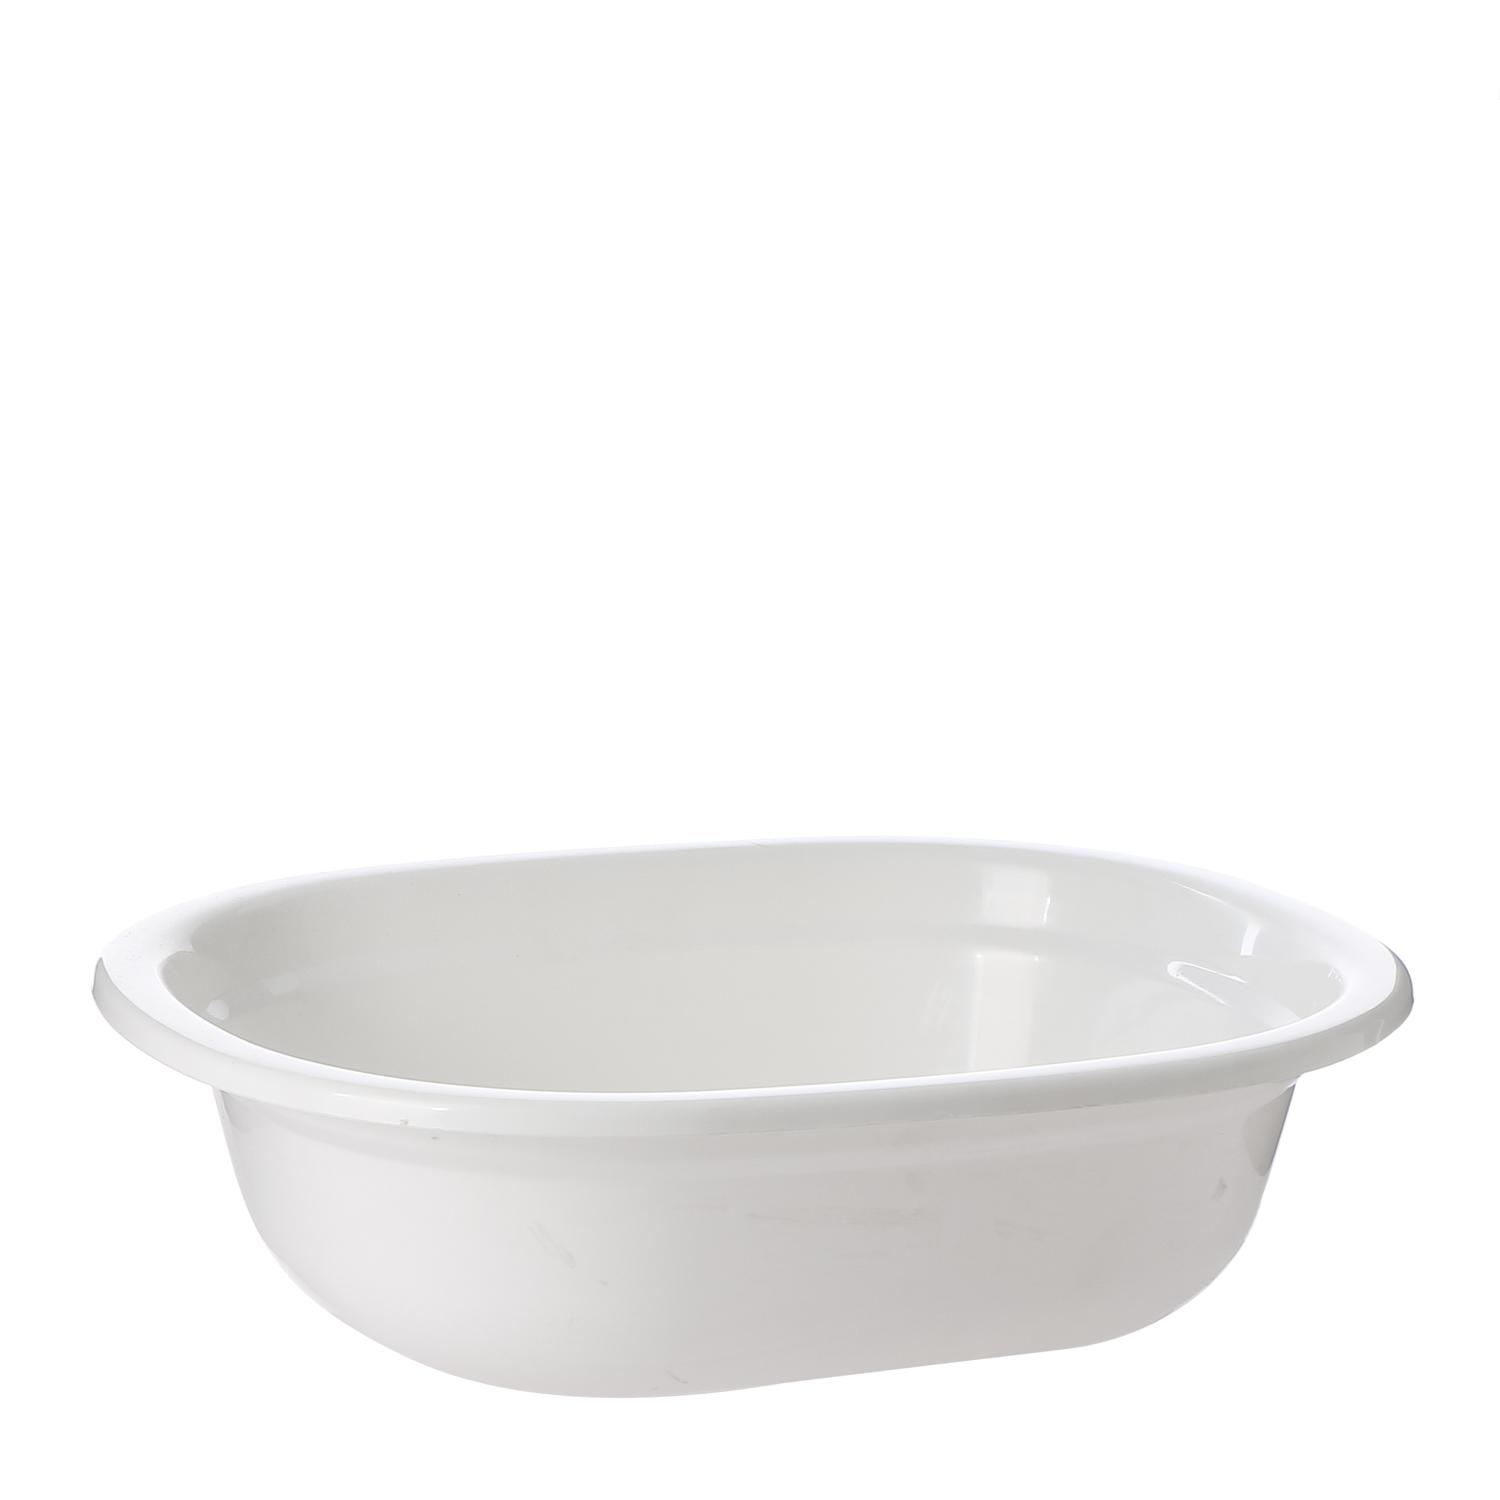 Megabox Rectangular Basin 5.5l By The Sm Store.